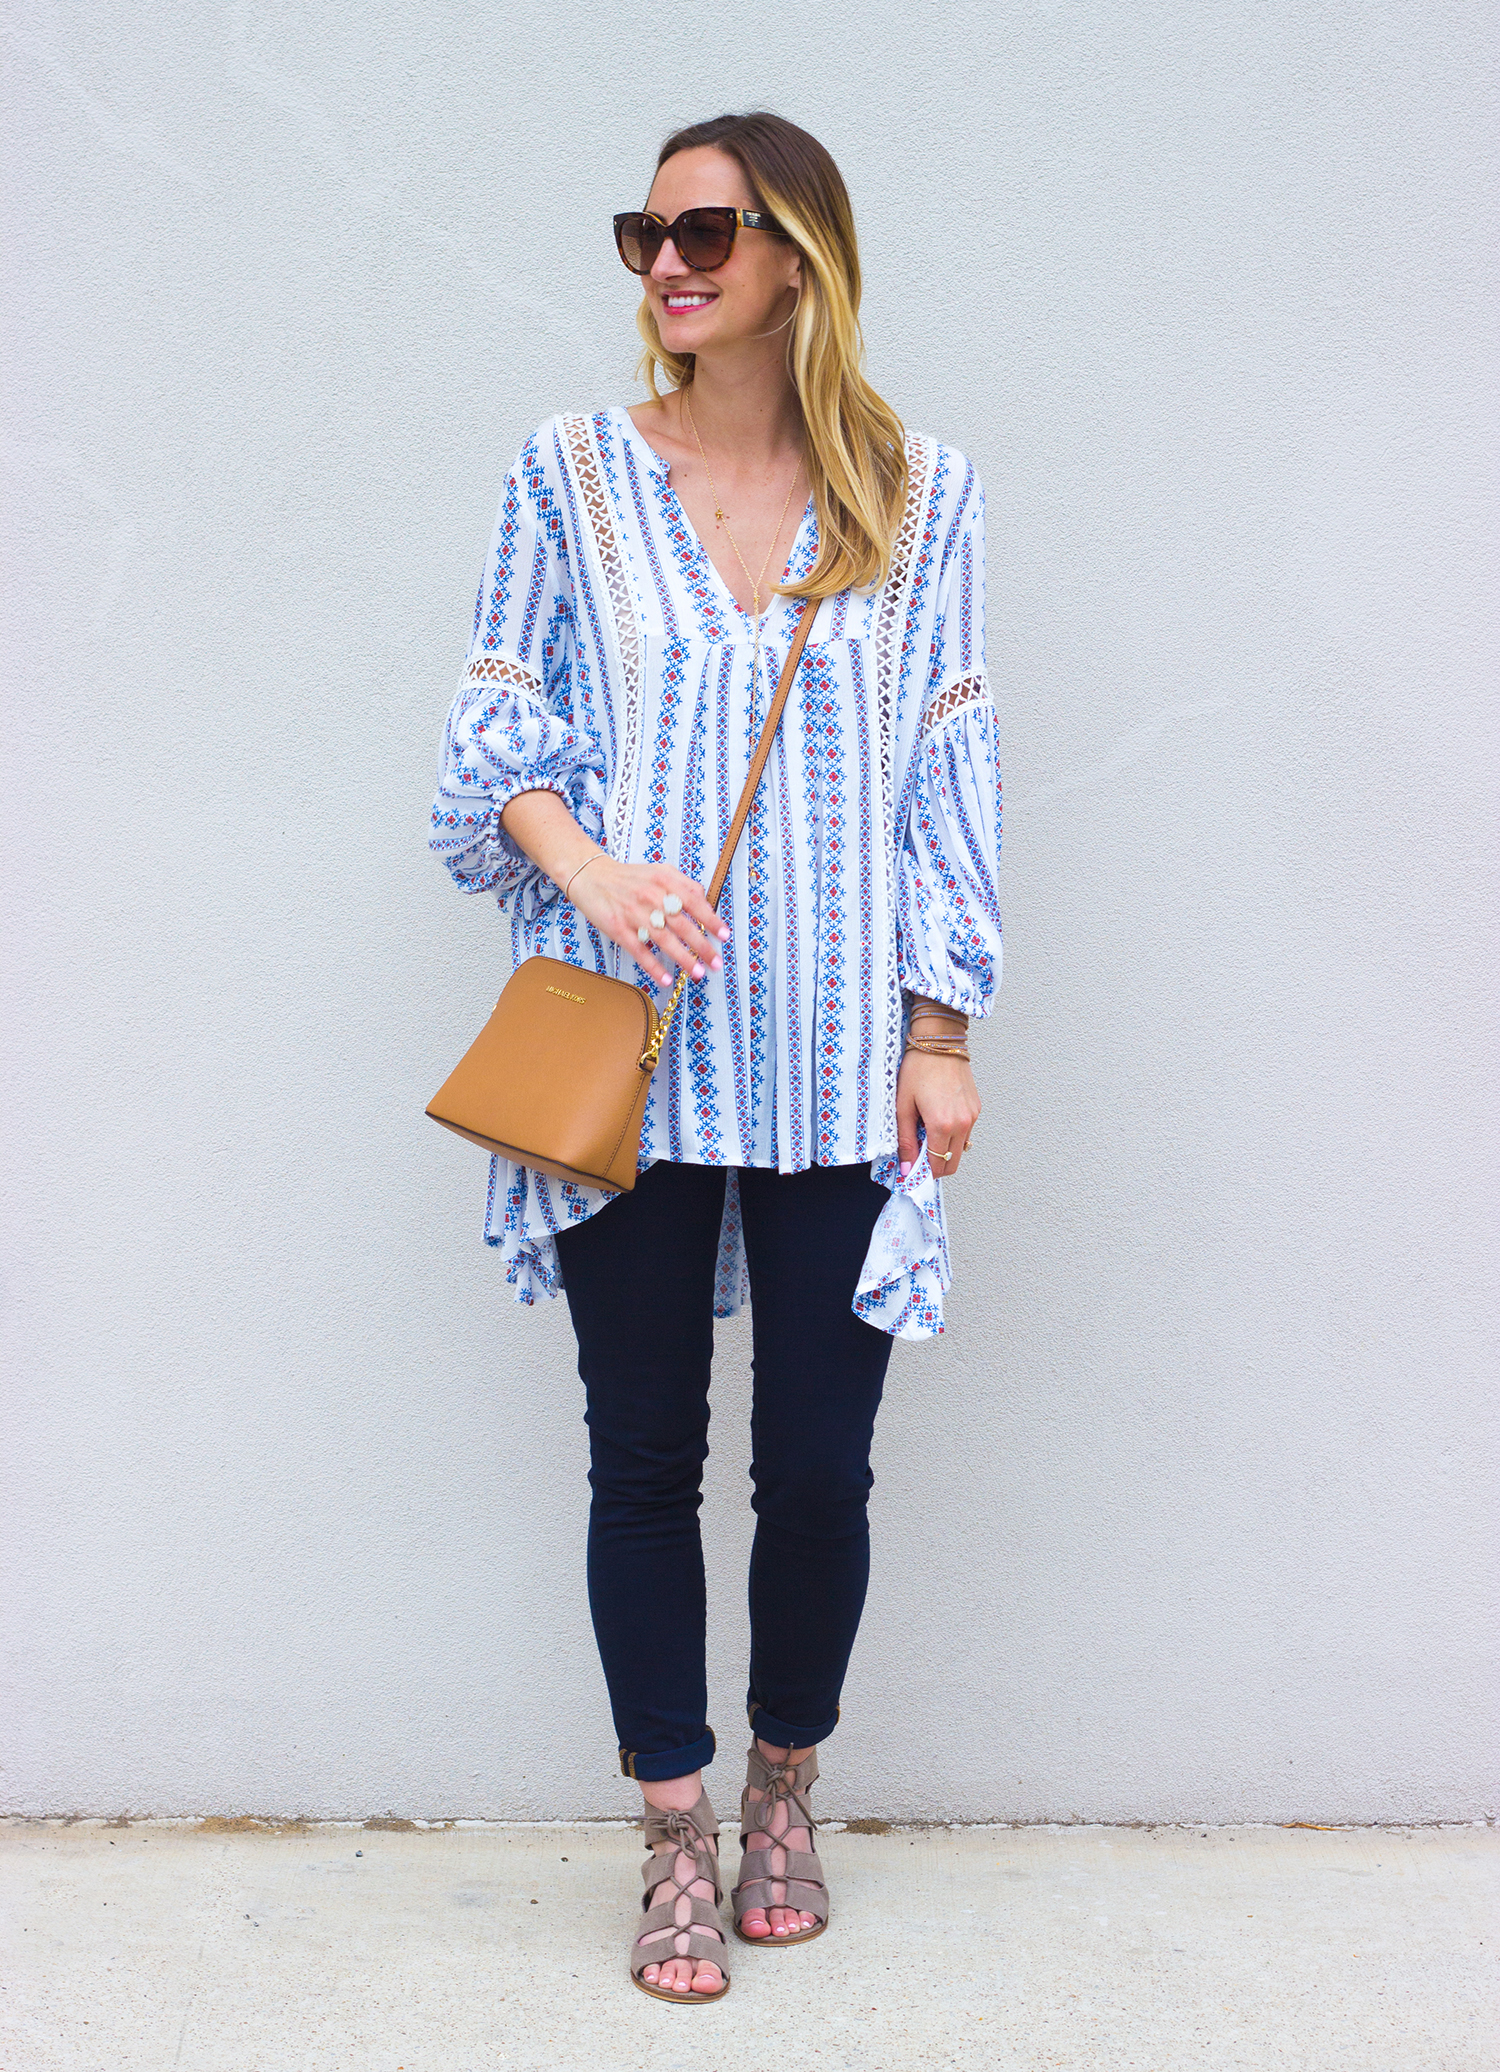 livvyland-blog-olivia-watson-boho-printed-oversize-tunic-chicwish-rebecca-minkoff-dark-wash-skinny-jeans-olivia-watson-austin-texas-fashion-blogger-steve-madden-roslyn-lace-up-sandals-3